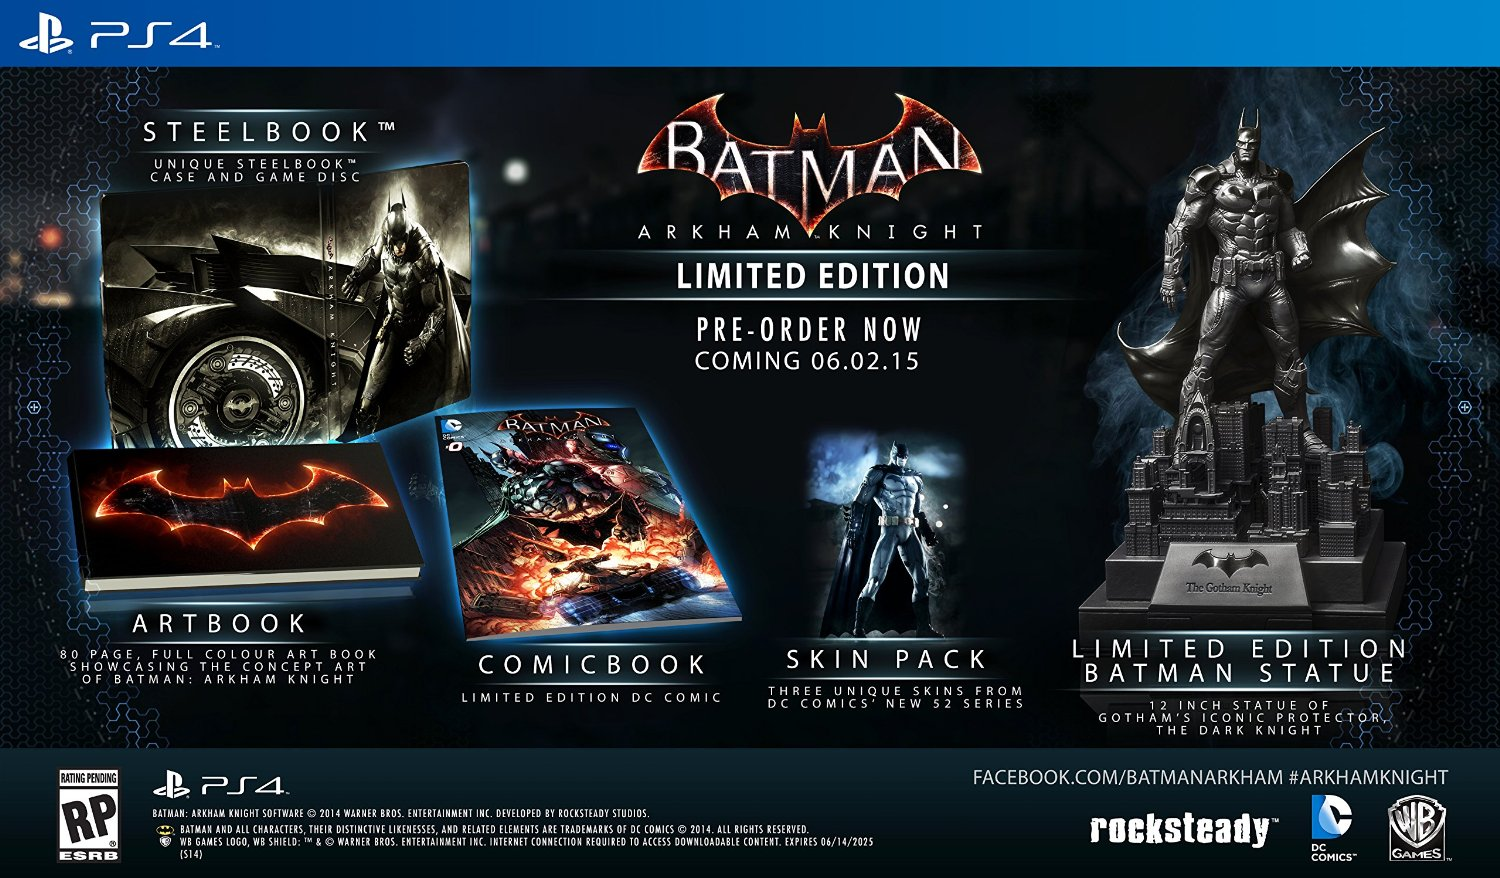 Batman: Arkham Knight Limited Edition contents